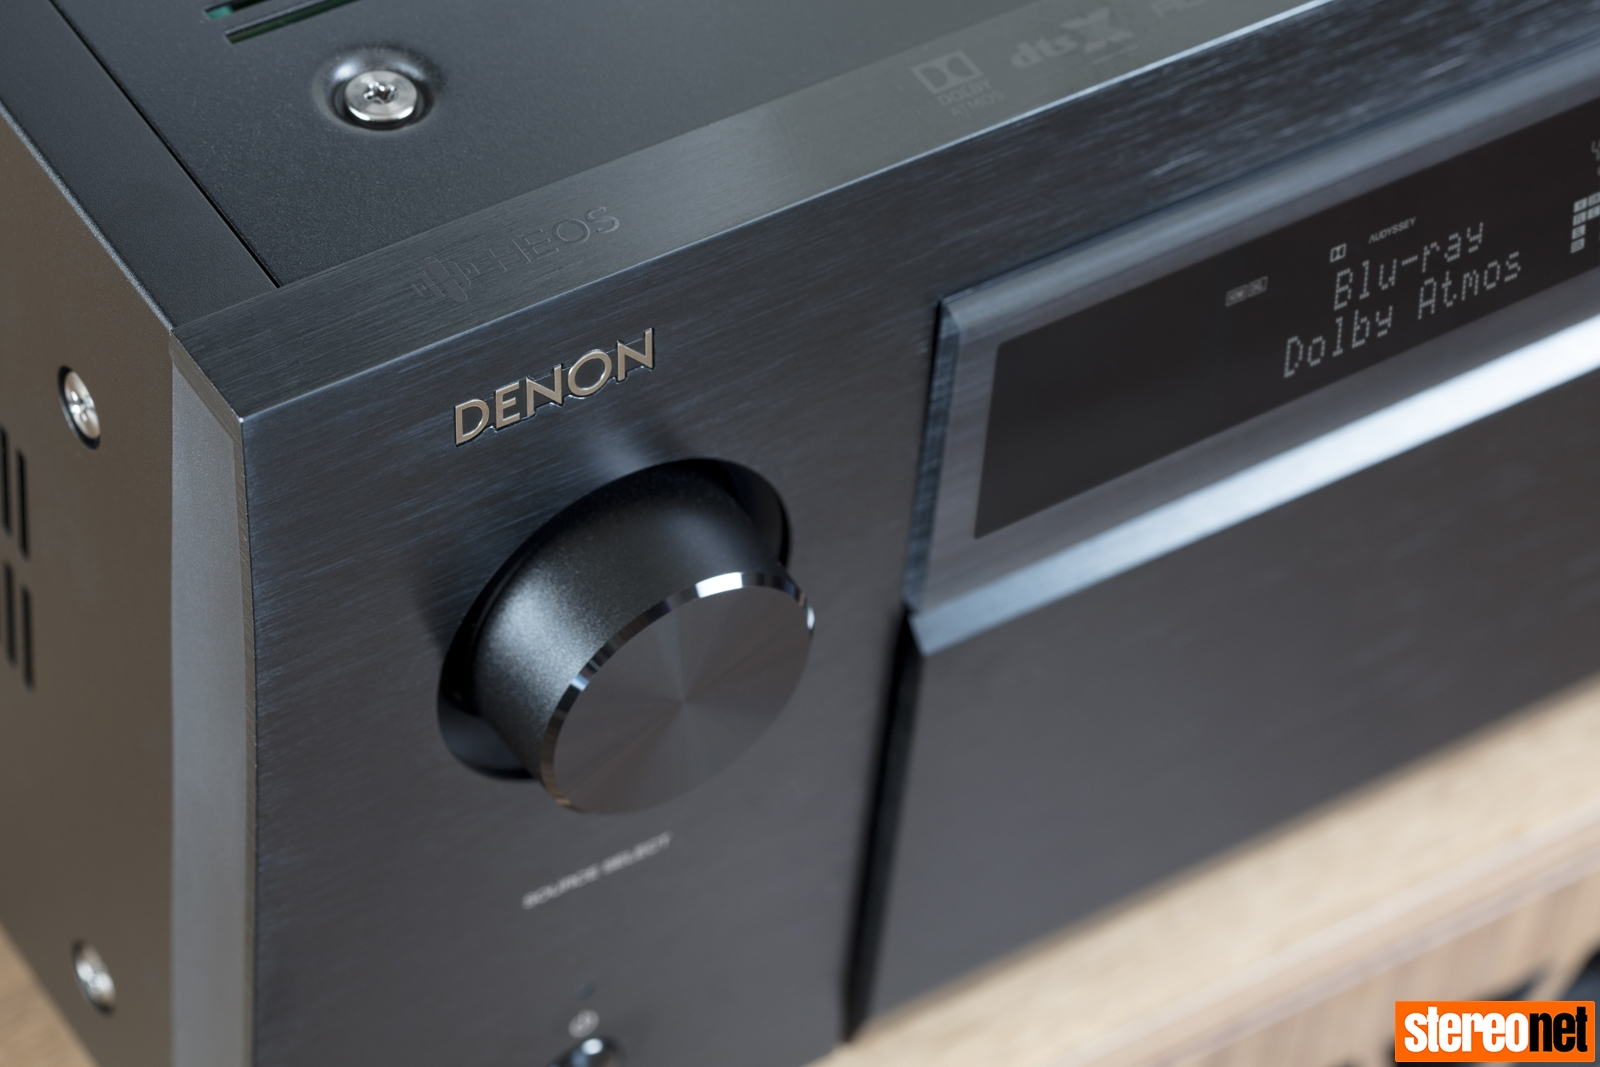 Denon AVC-X8500H 13 2 Channel AV Amplifier Review